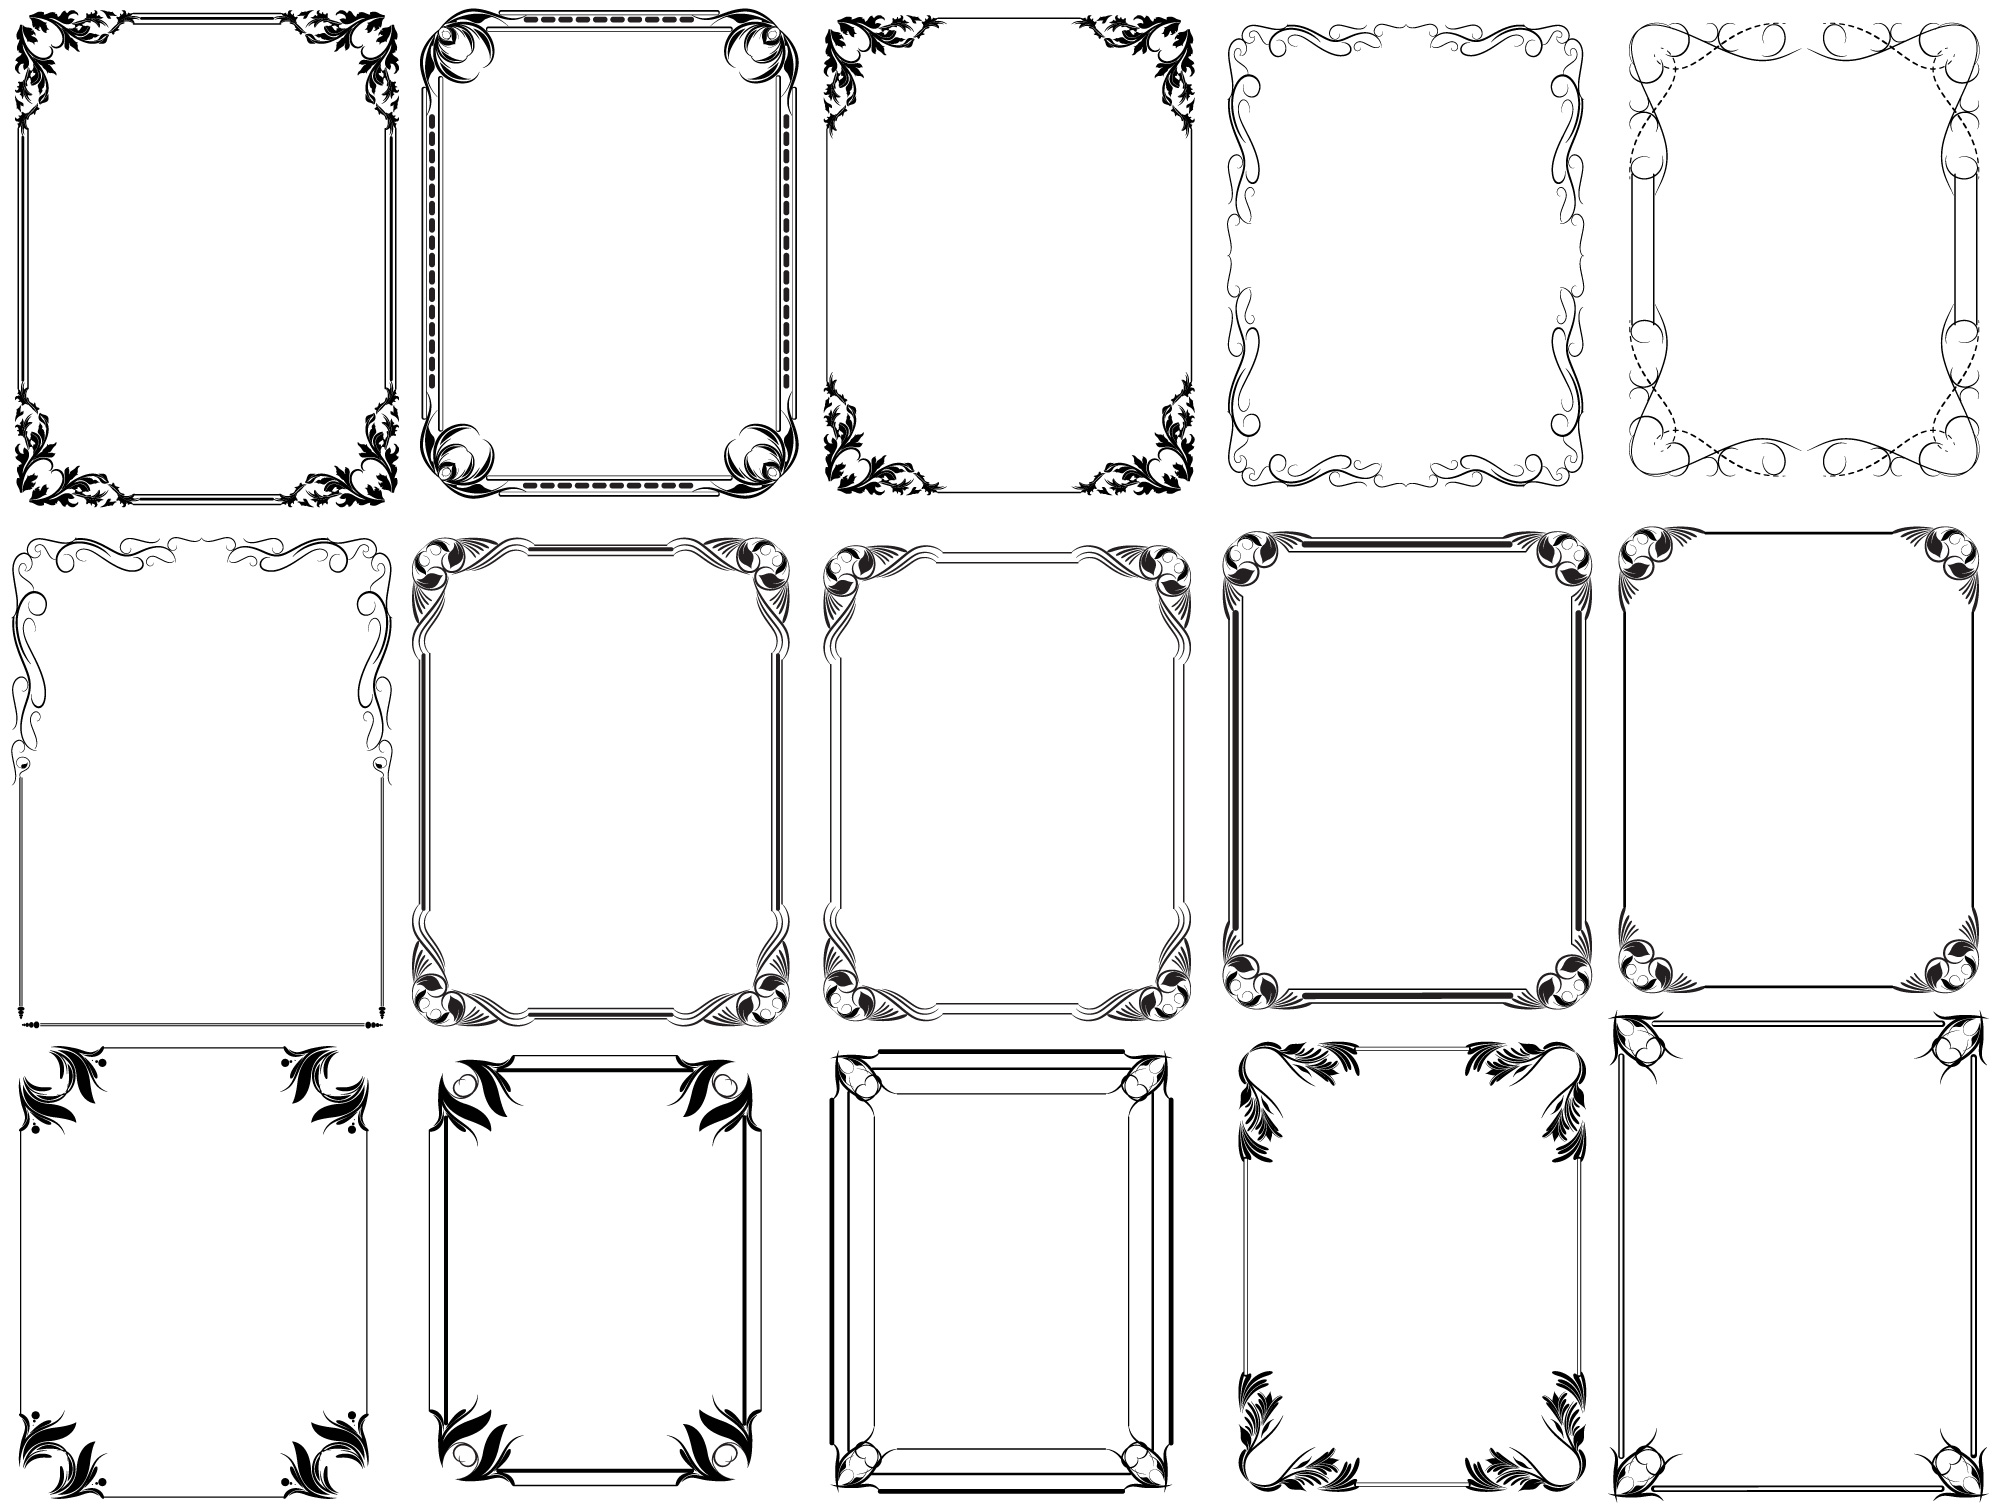 Free Photoshop Vintage Frames Brushes, Shapes, PNG, Pictures and